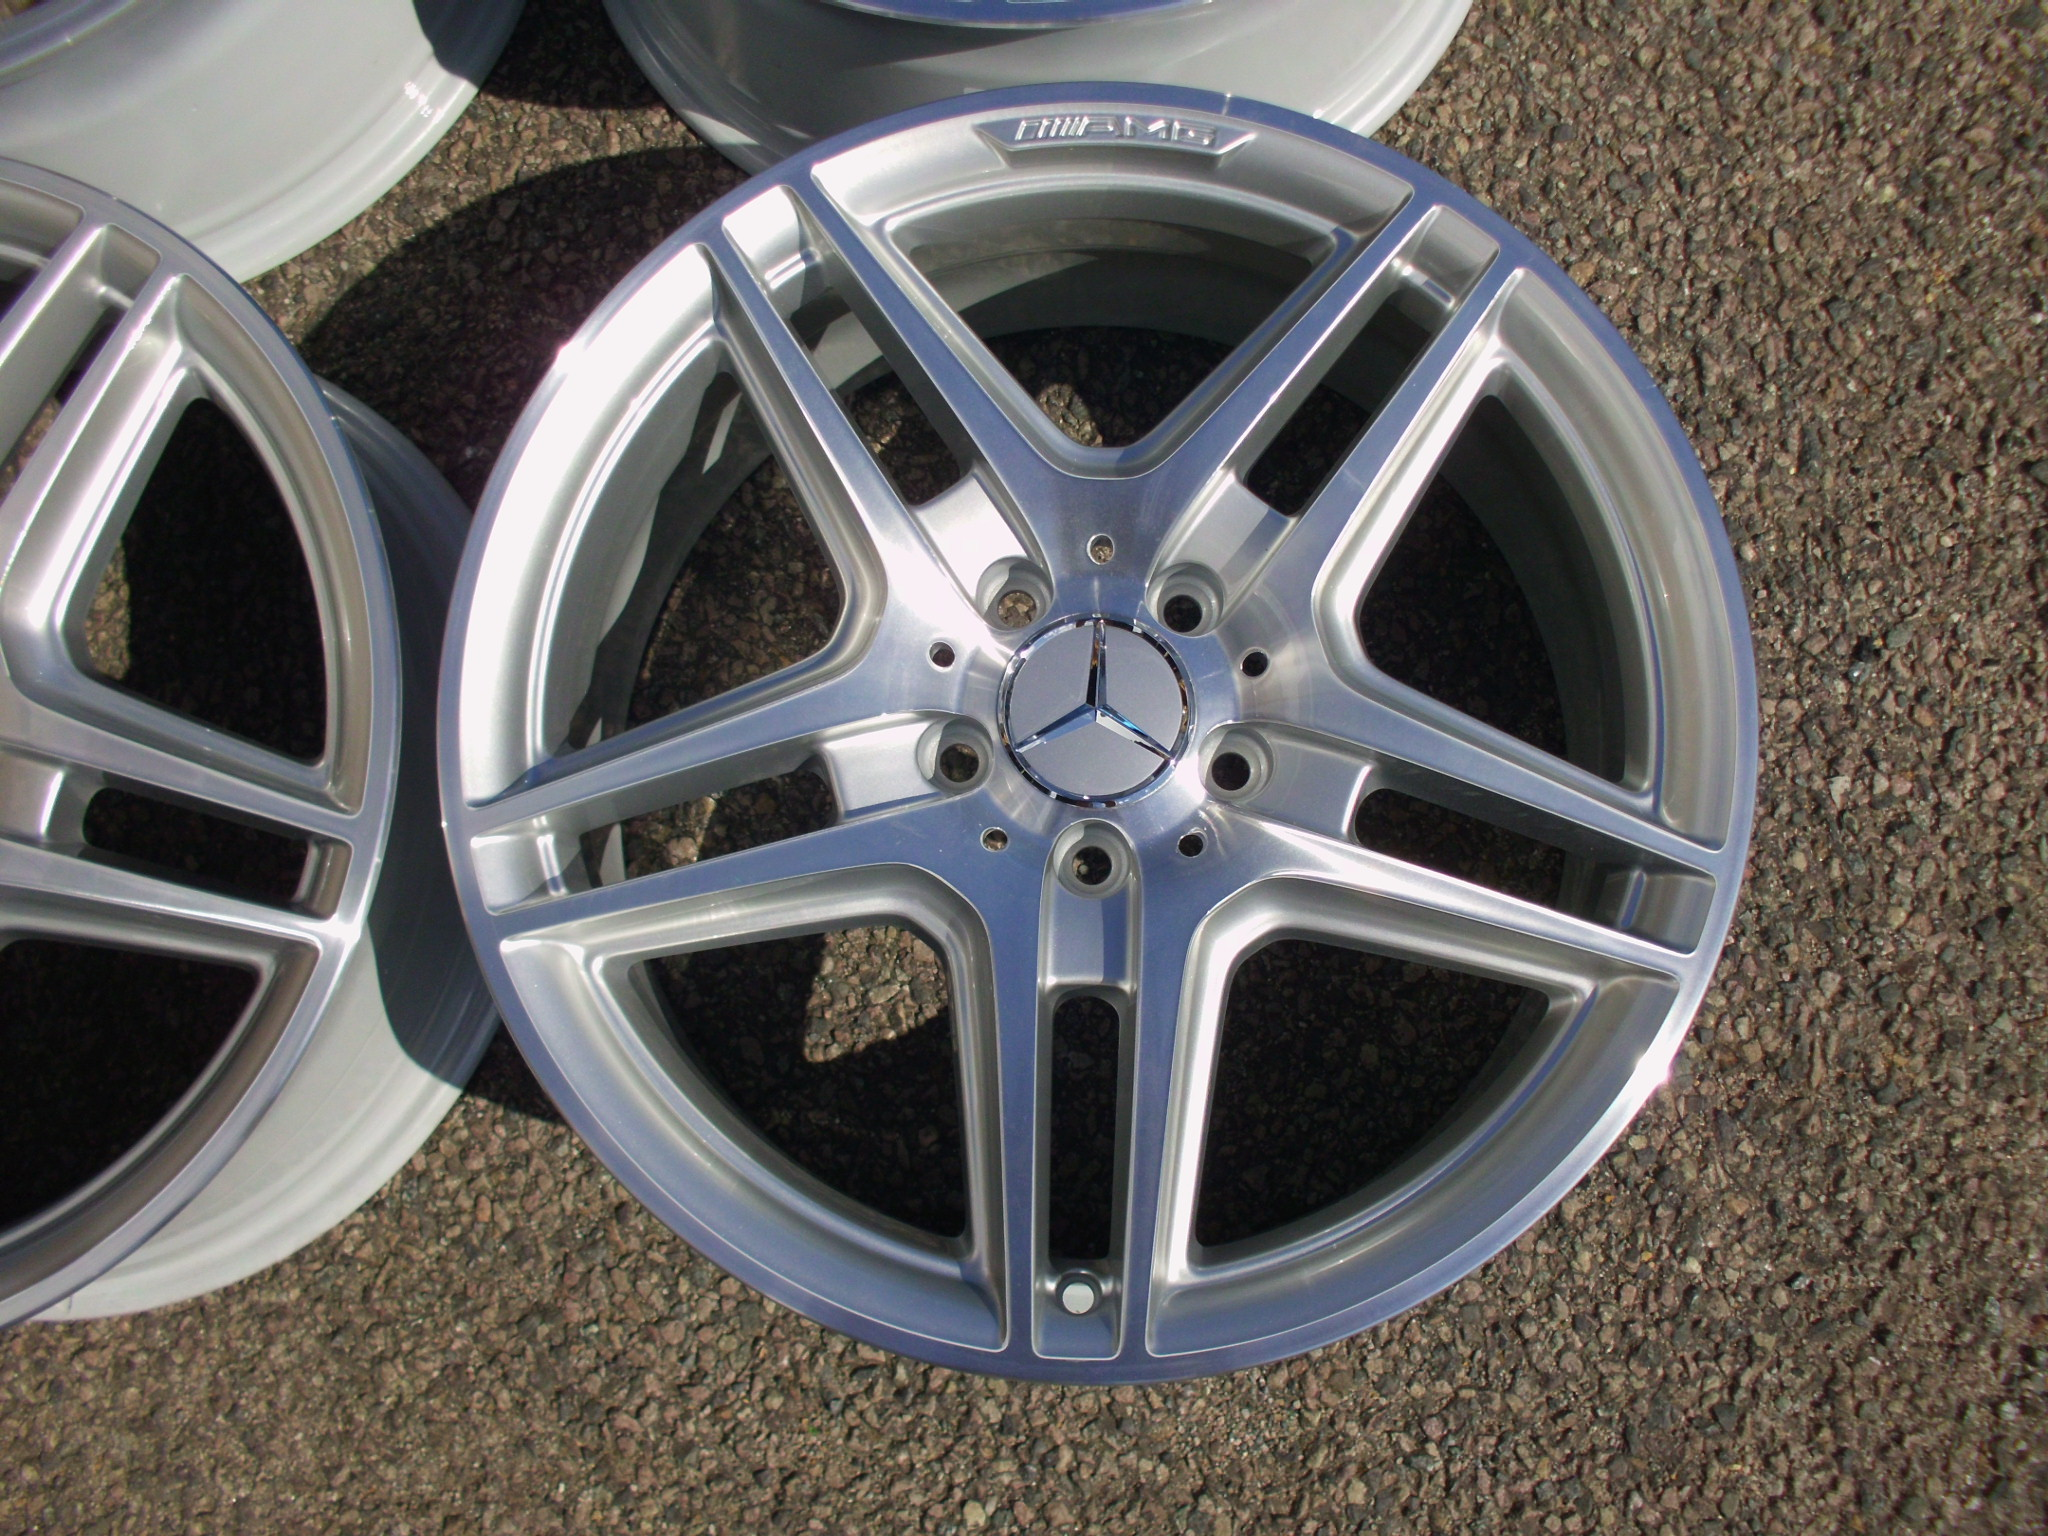 "USED 18"" GENUINE MERCEDES AMG IV 5 TWIN SPOKE ALLOYS WITH POLISHED FACE,WIDER REARS,FULLY REFURBED TO FIT MANY MERCEDES MODELS"